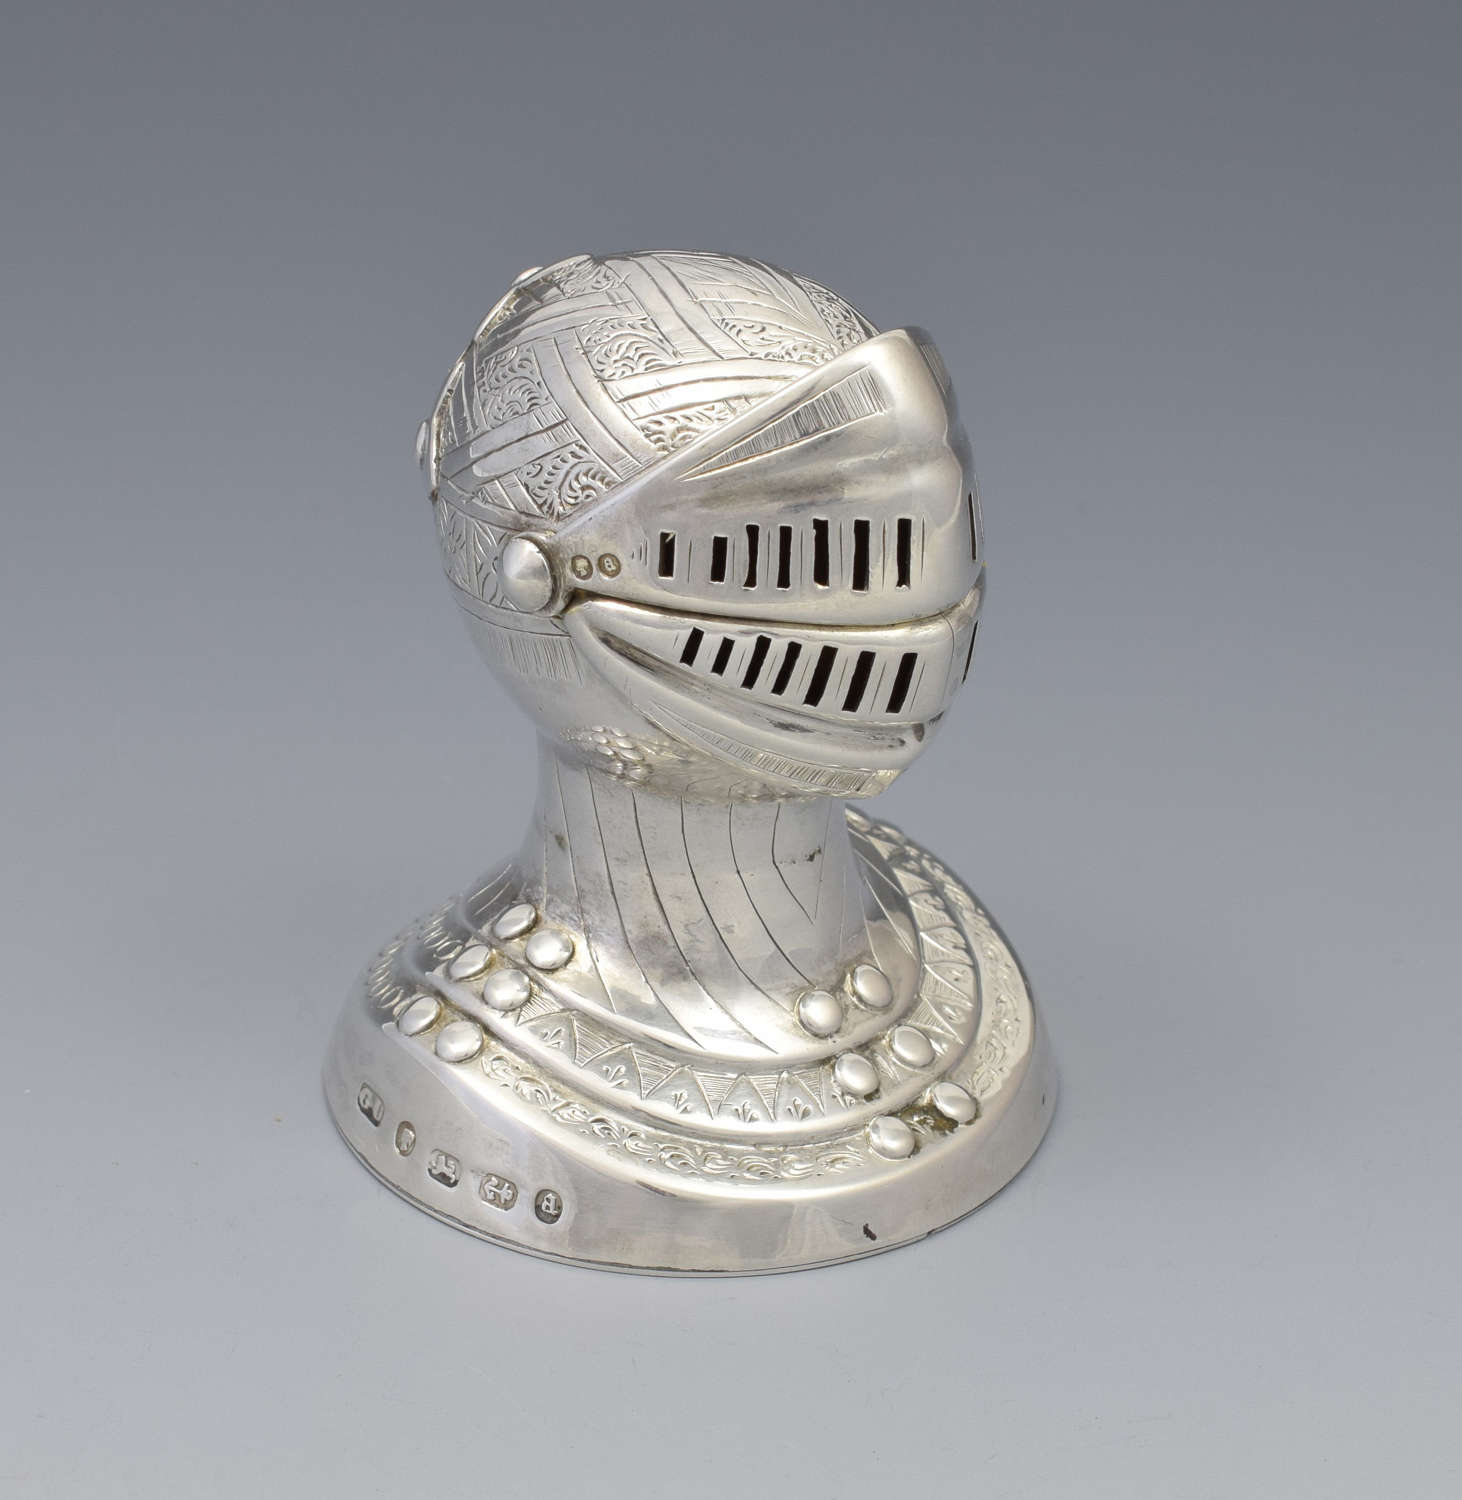 Victorian Novelty Silver Knight's Head Pepperette George Unite